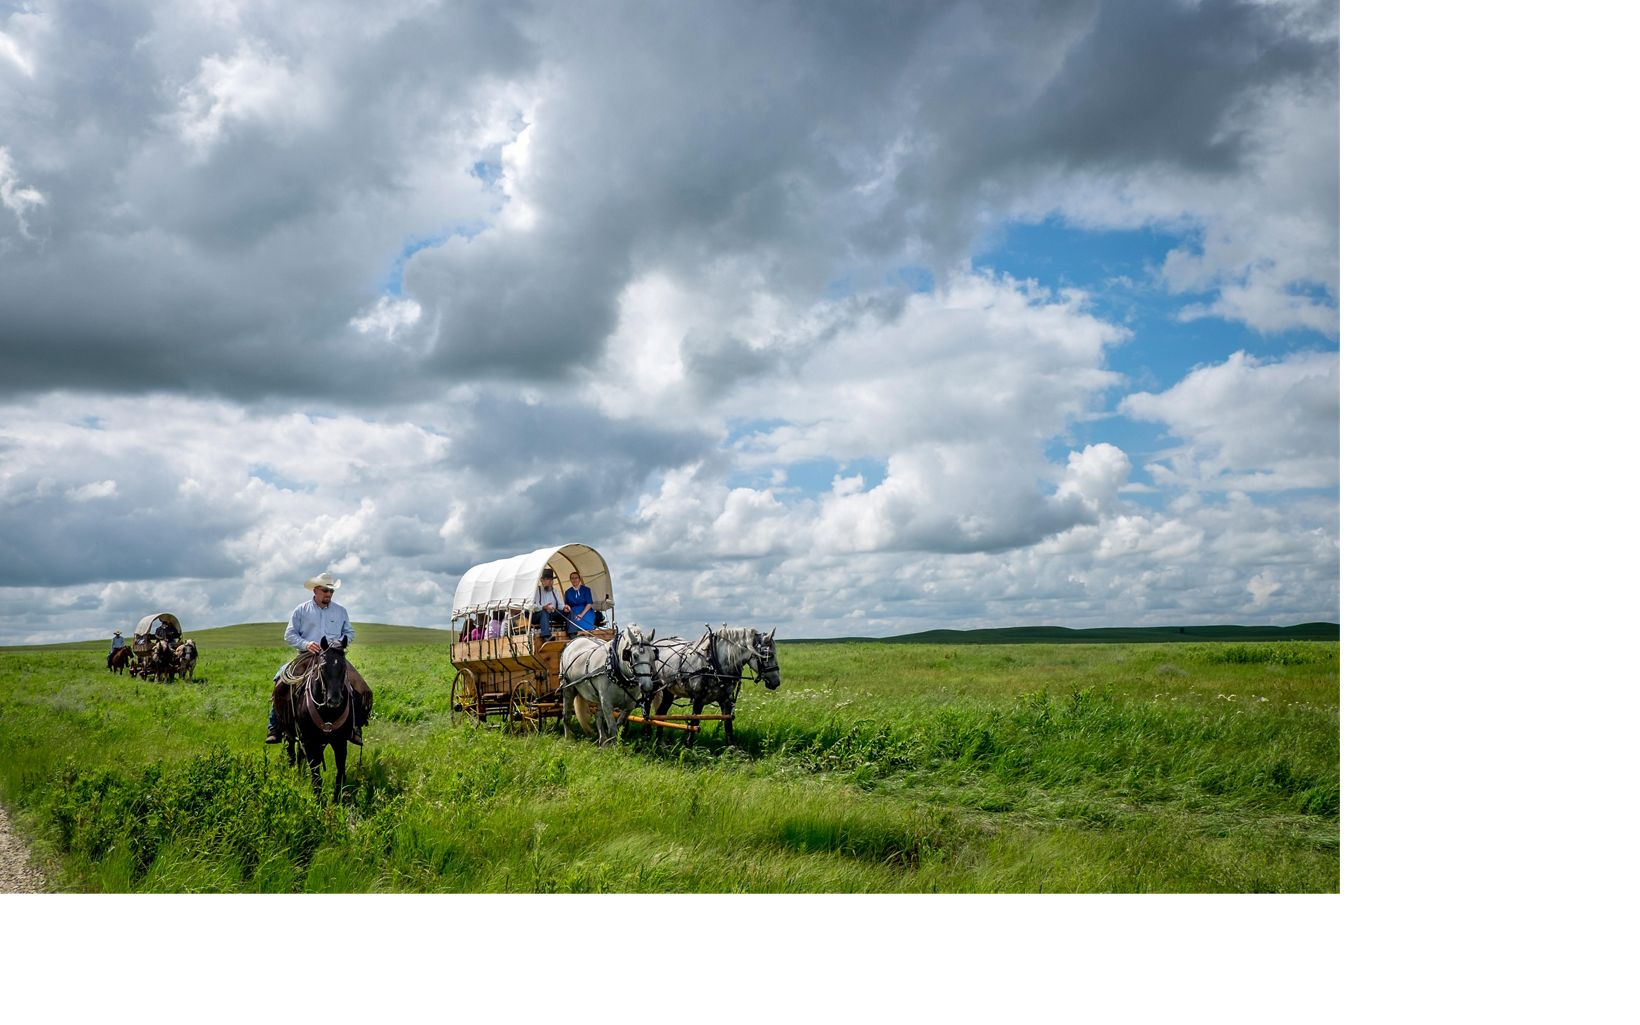 Guests make a day of visiting the prairie. It starts with a wagon ride or hike from the parking lot, followed by art exhibits, music, natural-history talks, and hiking.